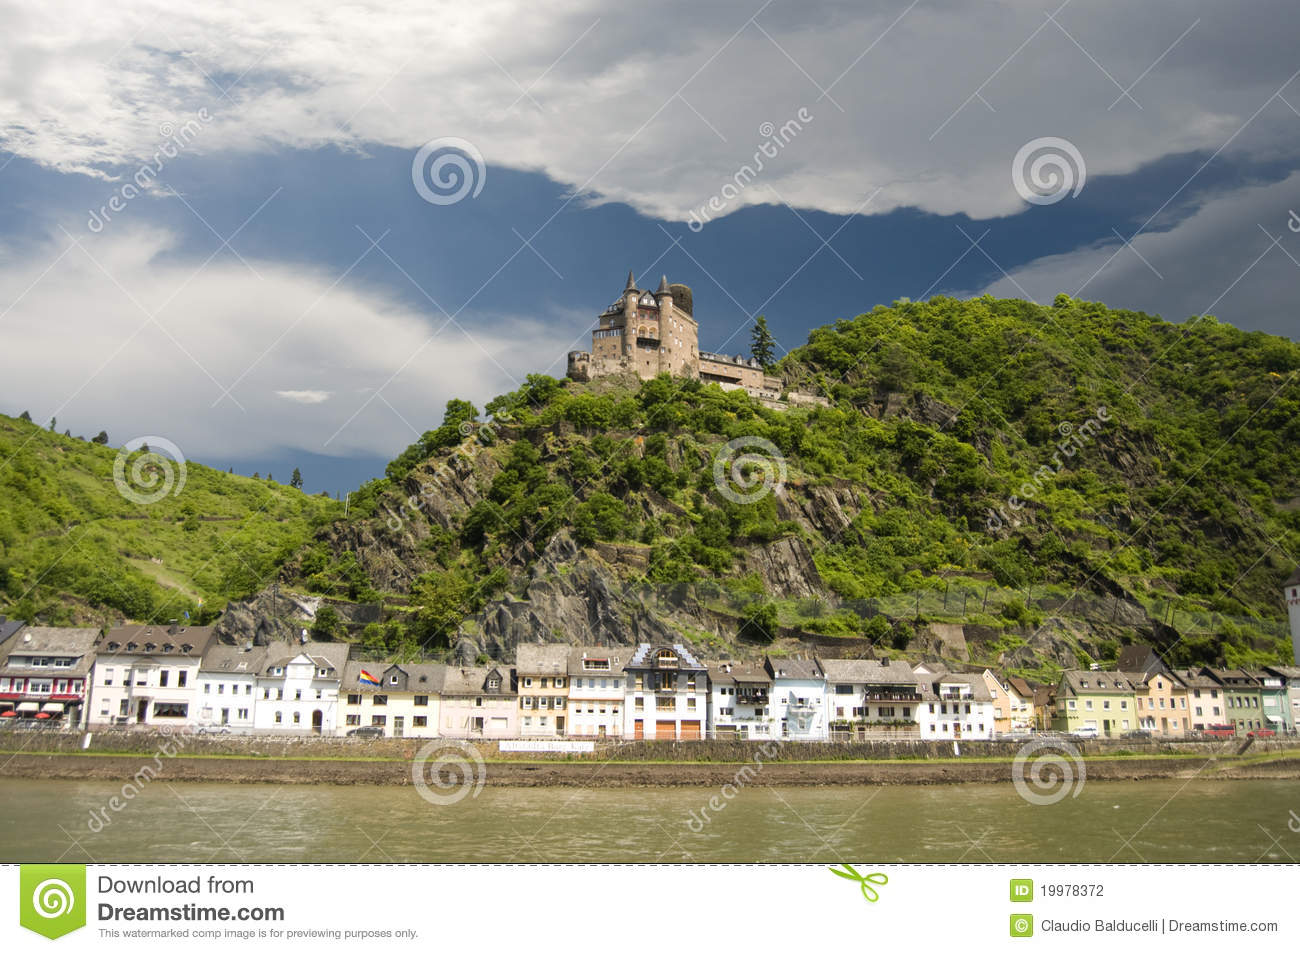 Village and castle on Rhine Valley